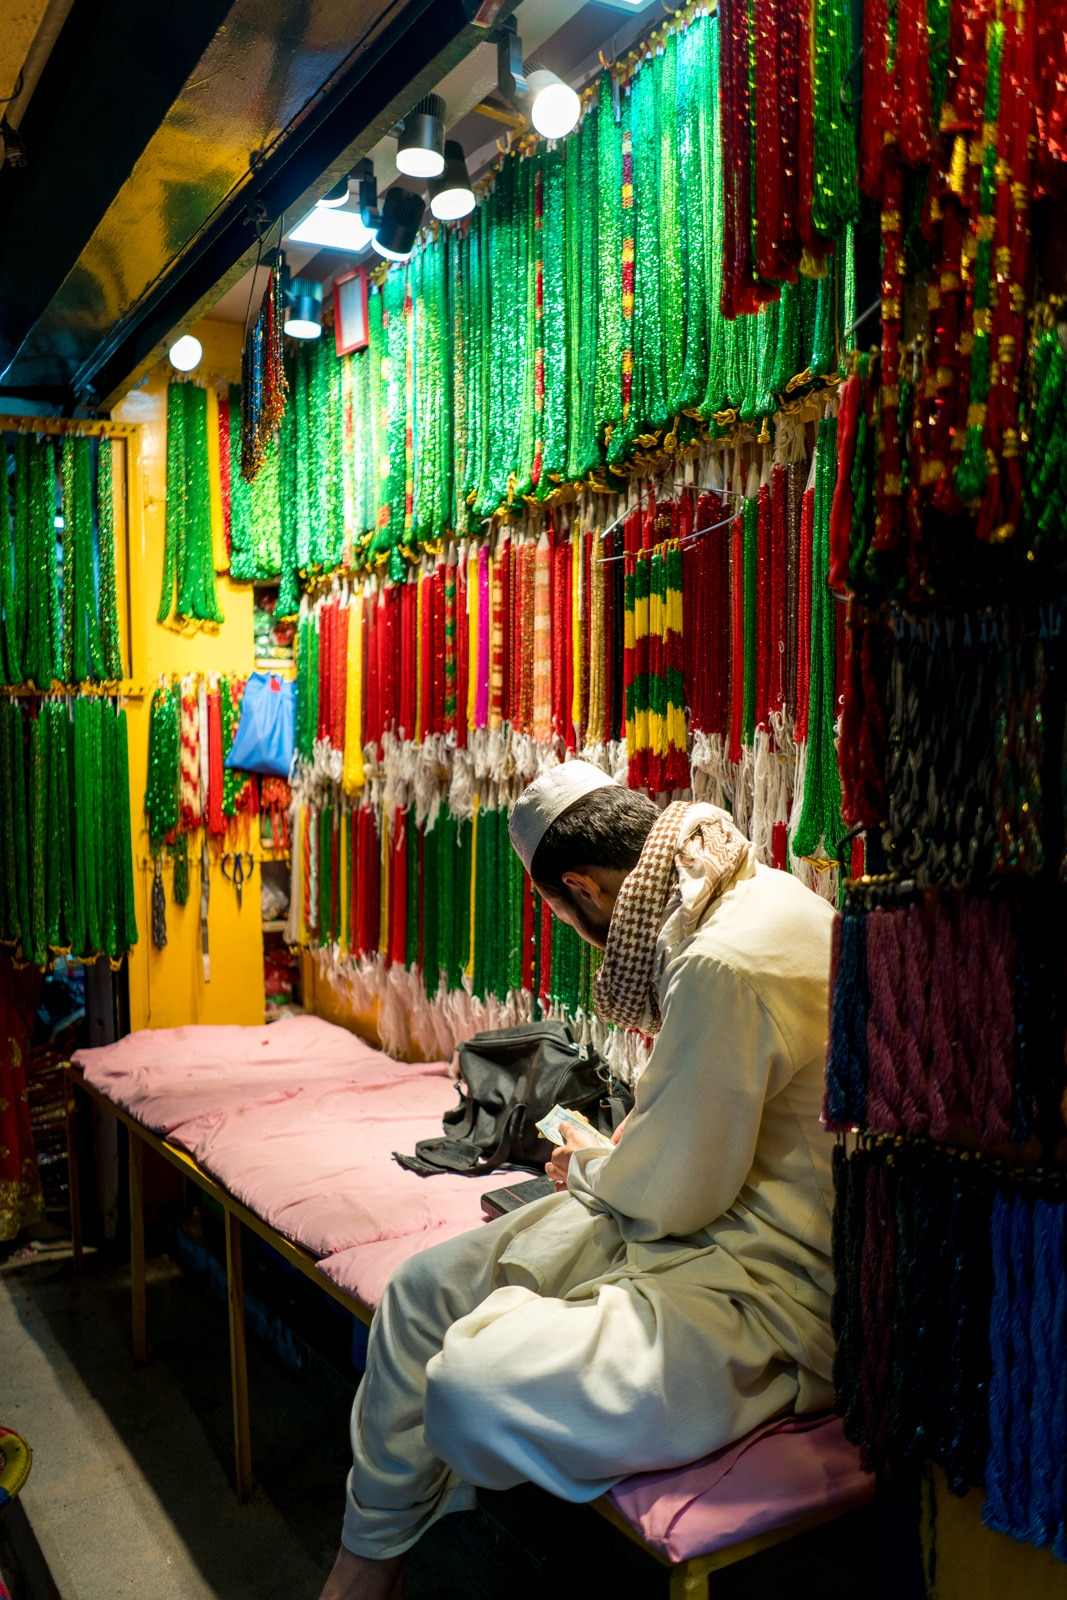 A man selling colorful jewelry in the New Market area of Kathmandu, Nepal.